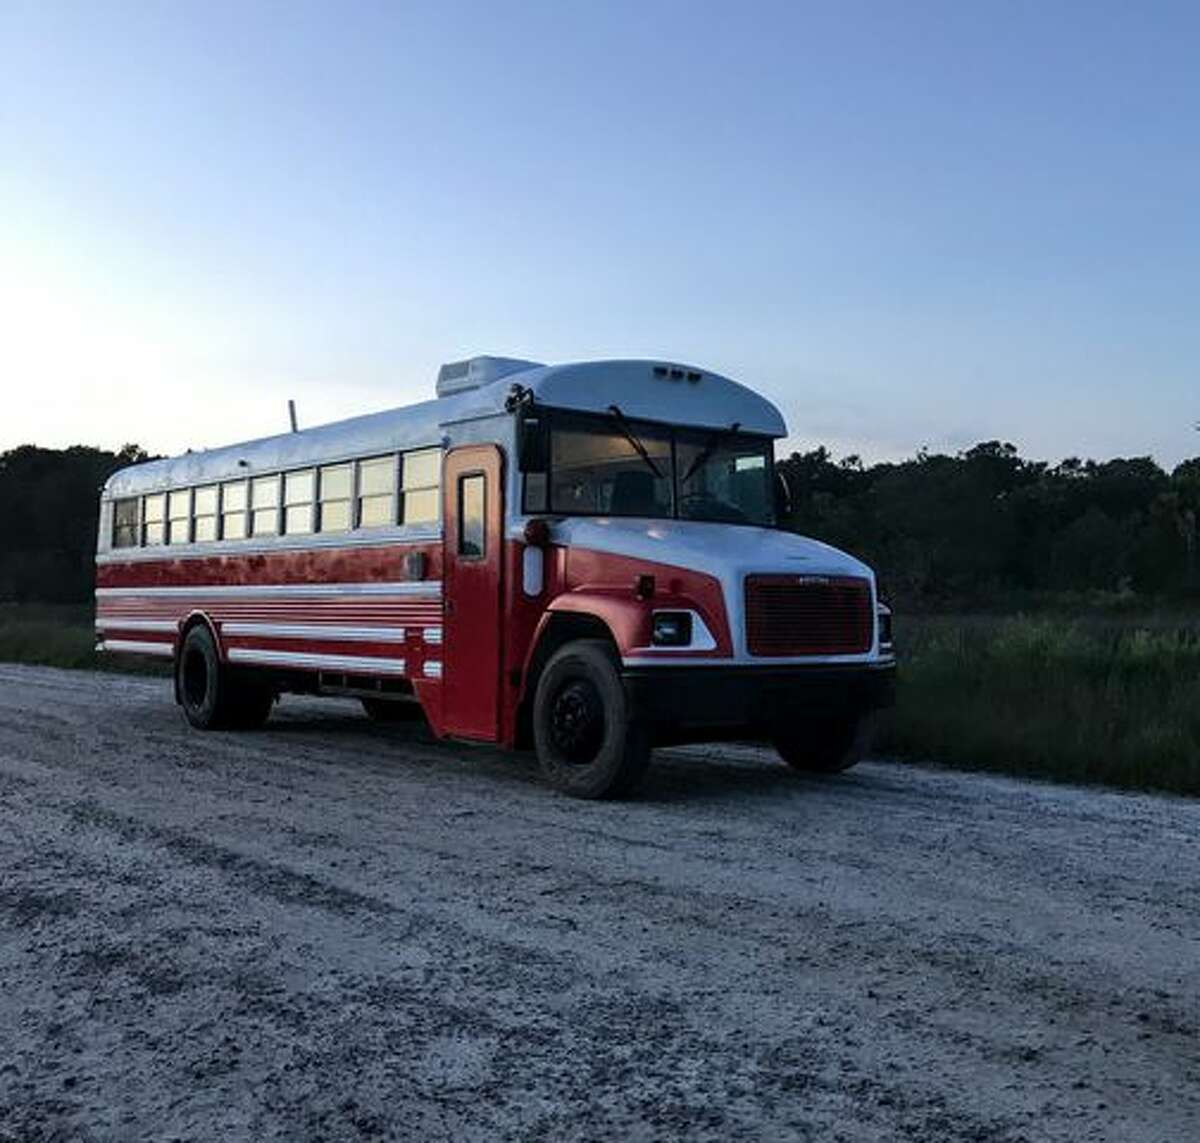 The Wonderland Bus, converted into a home by Skoolie Homes.